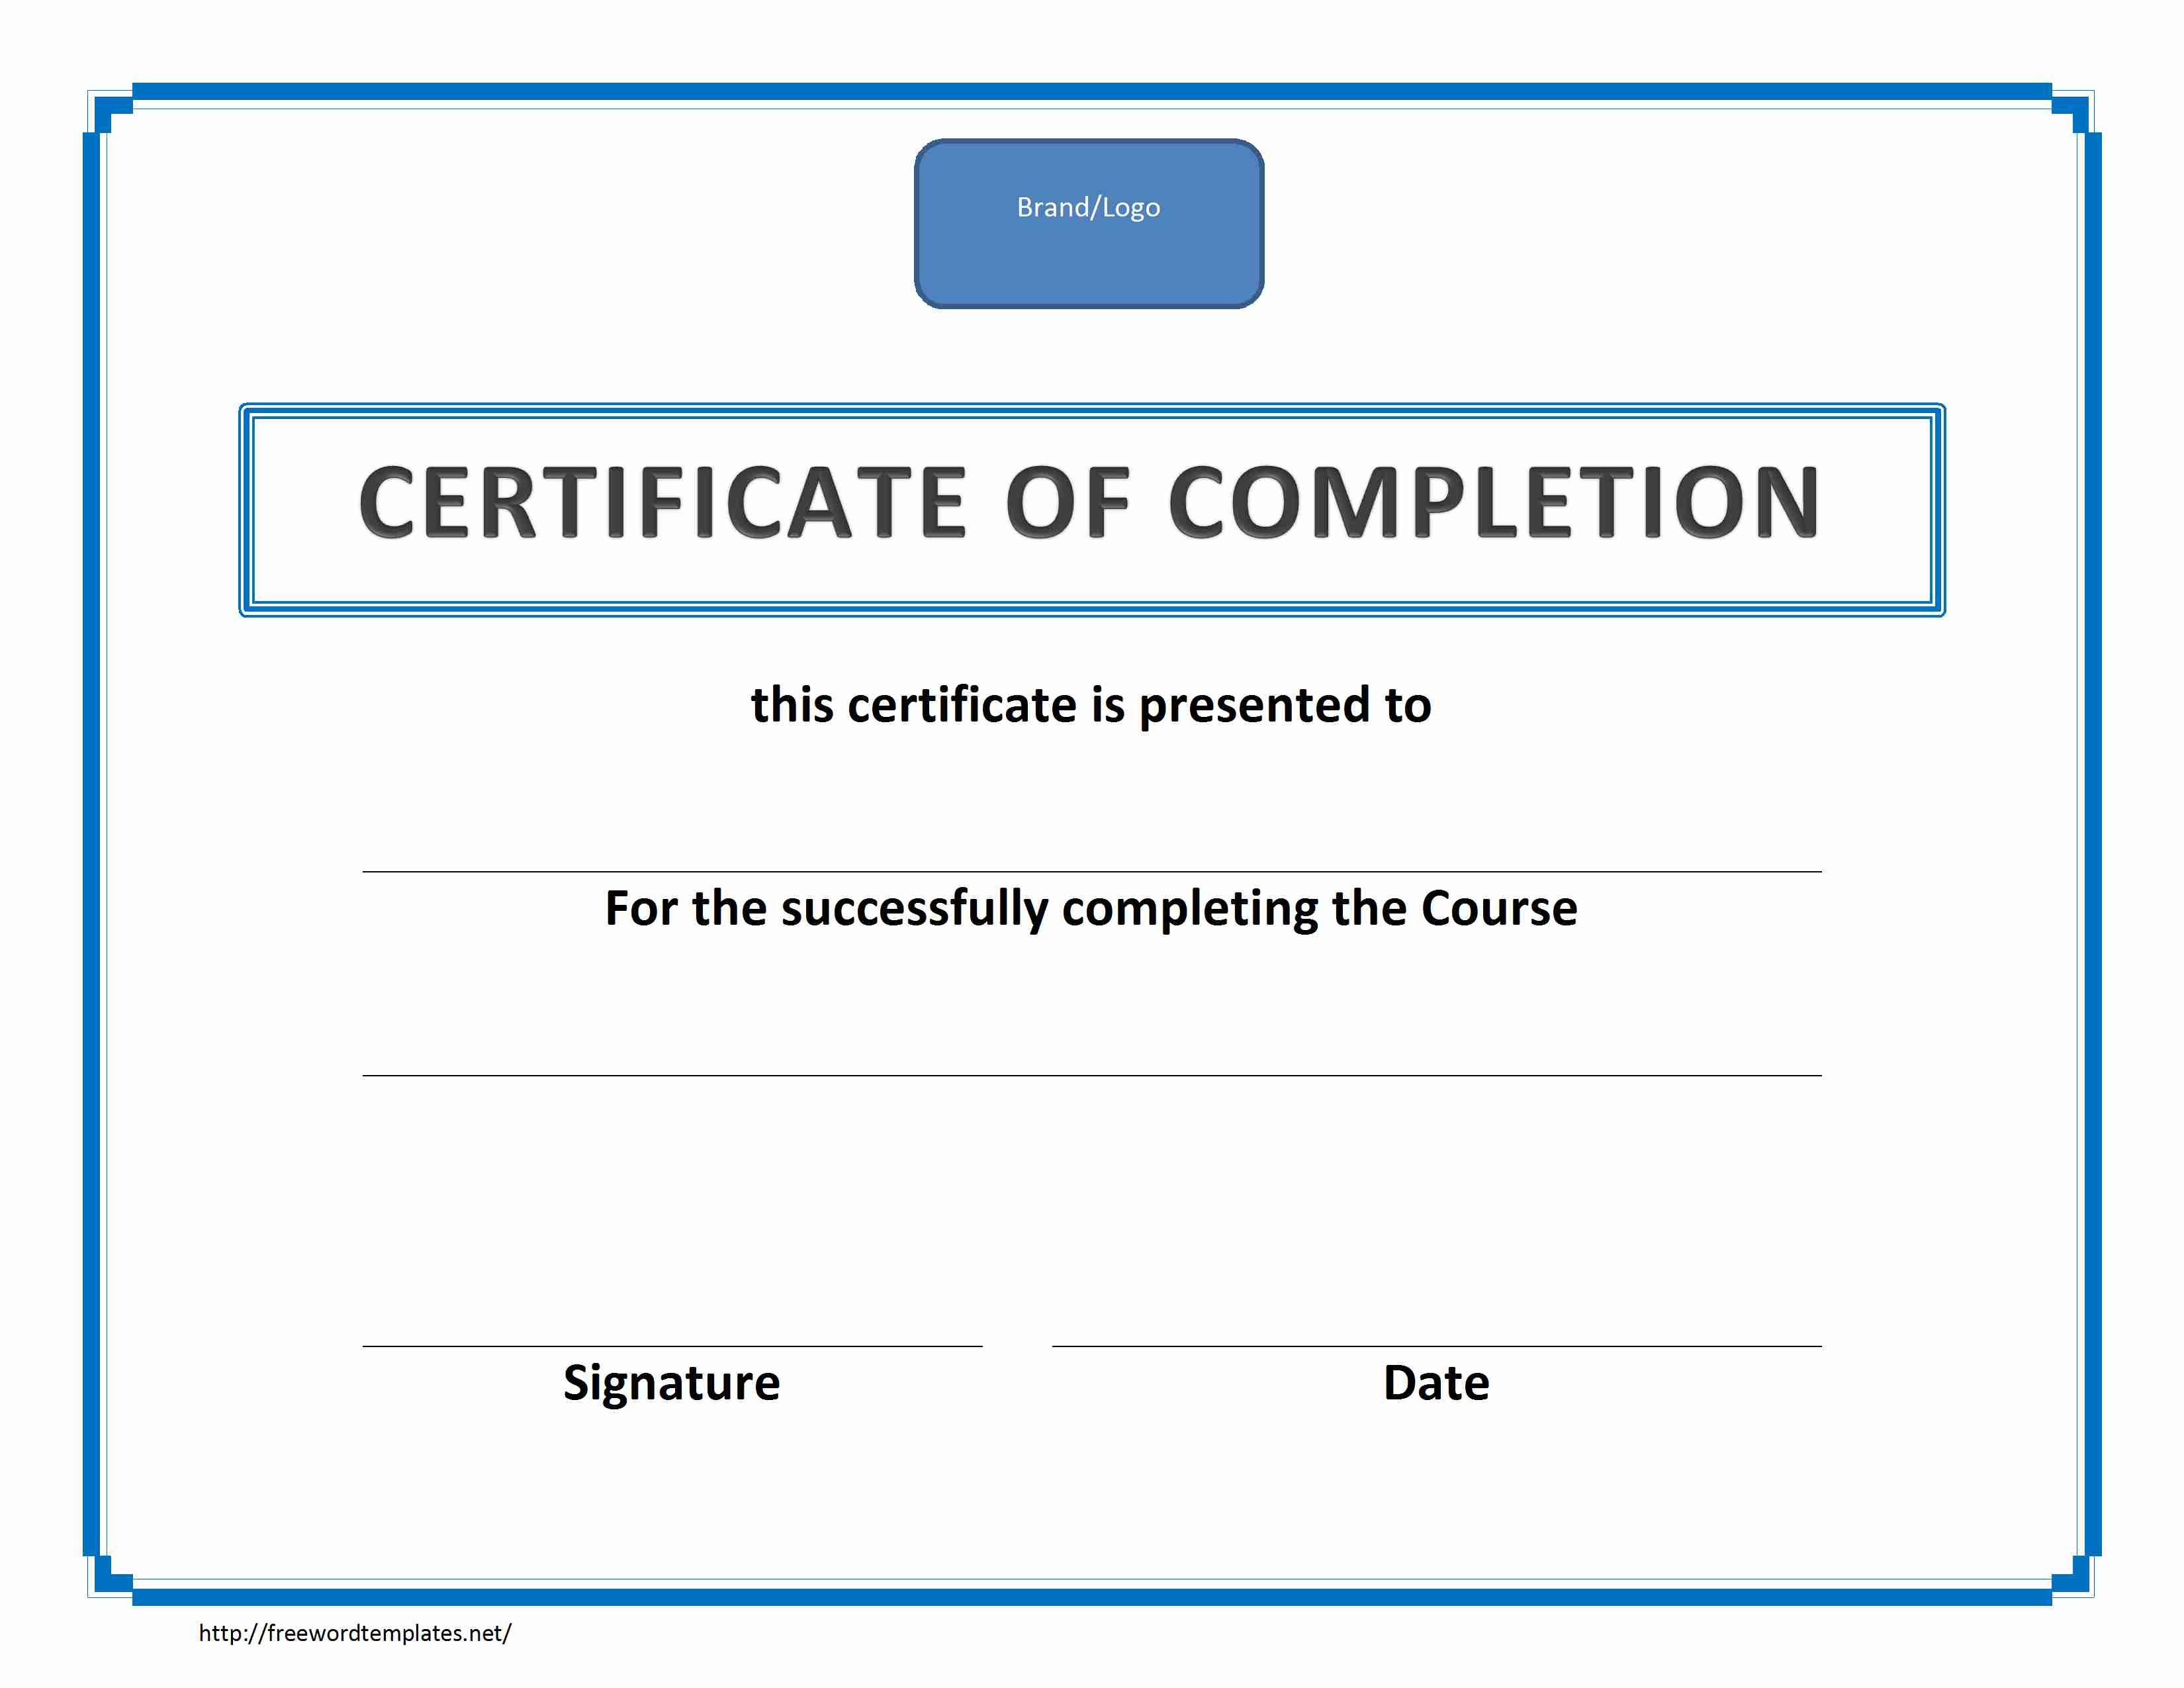 Training Certificate Of Completion Pertaining To Certificate Of Completion Word Template